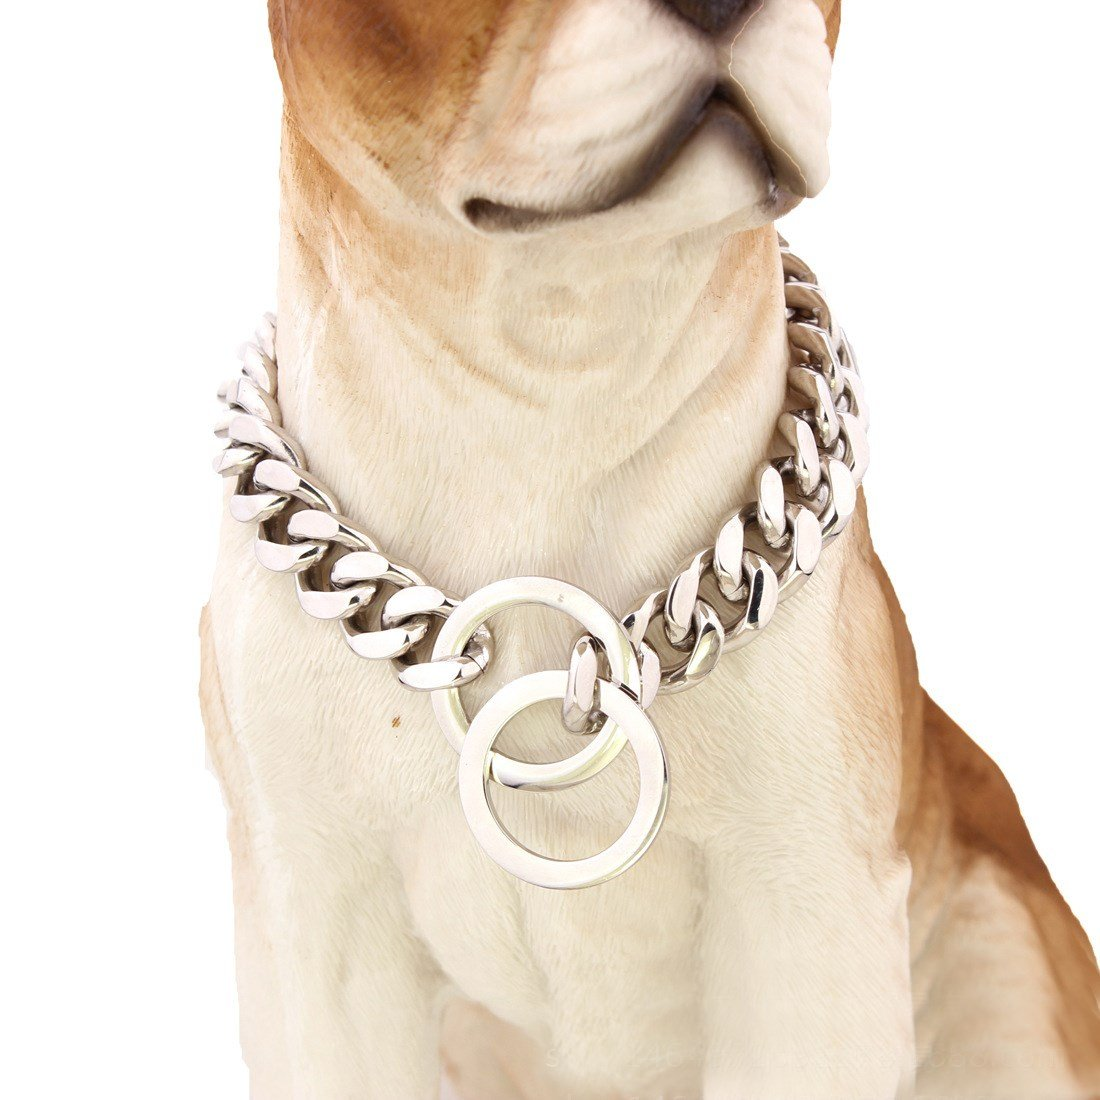 30 inch Pet Online Dog collar mirror polished stainless steel p chain titanium steel chain necklace pet dog training leash Tow Collar 15mm,30